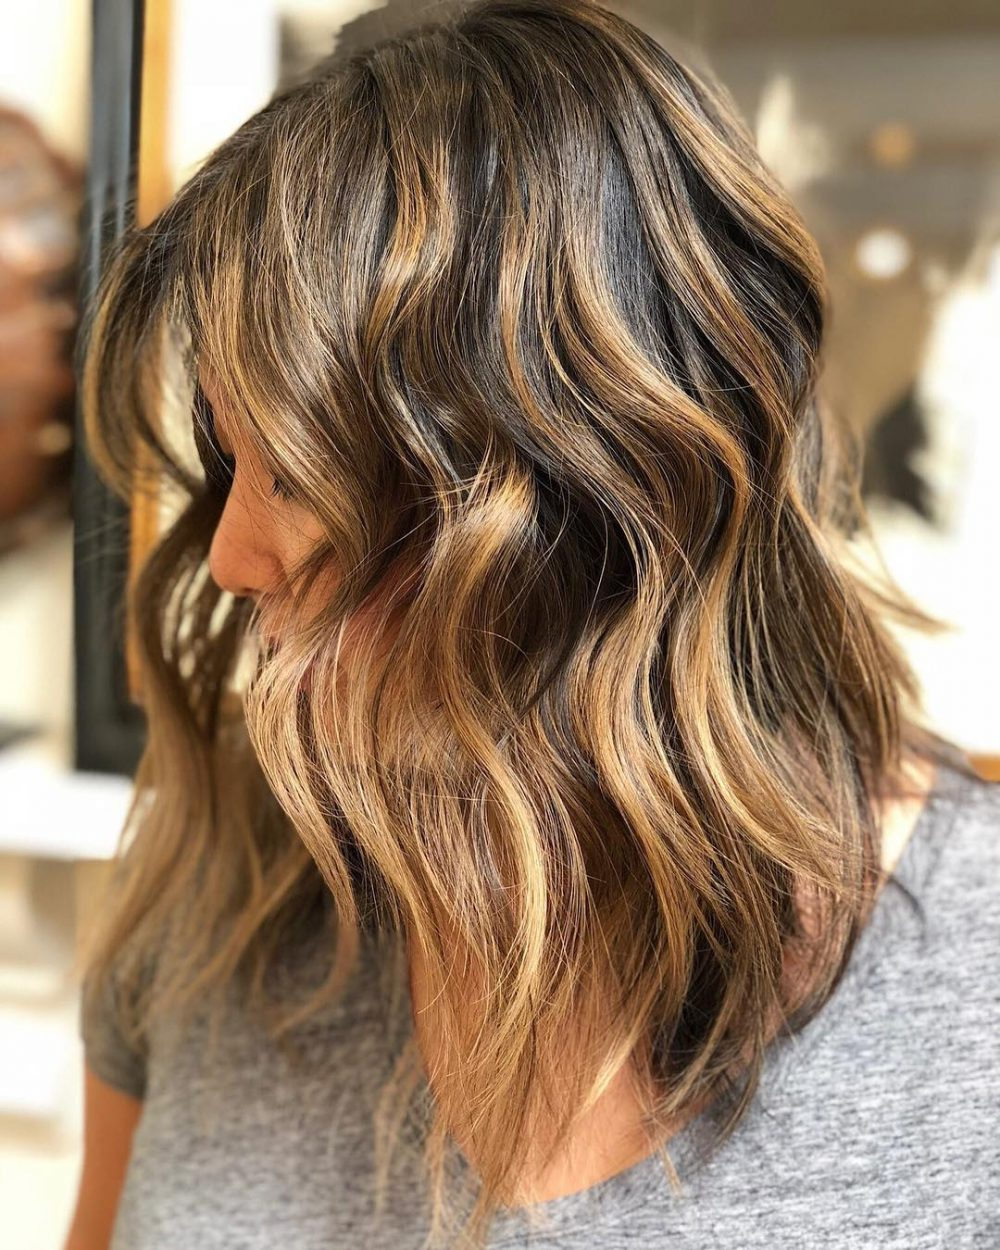 41 Different Hairstyles To Try in 2019